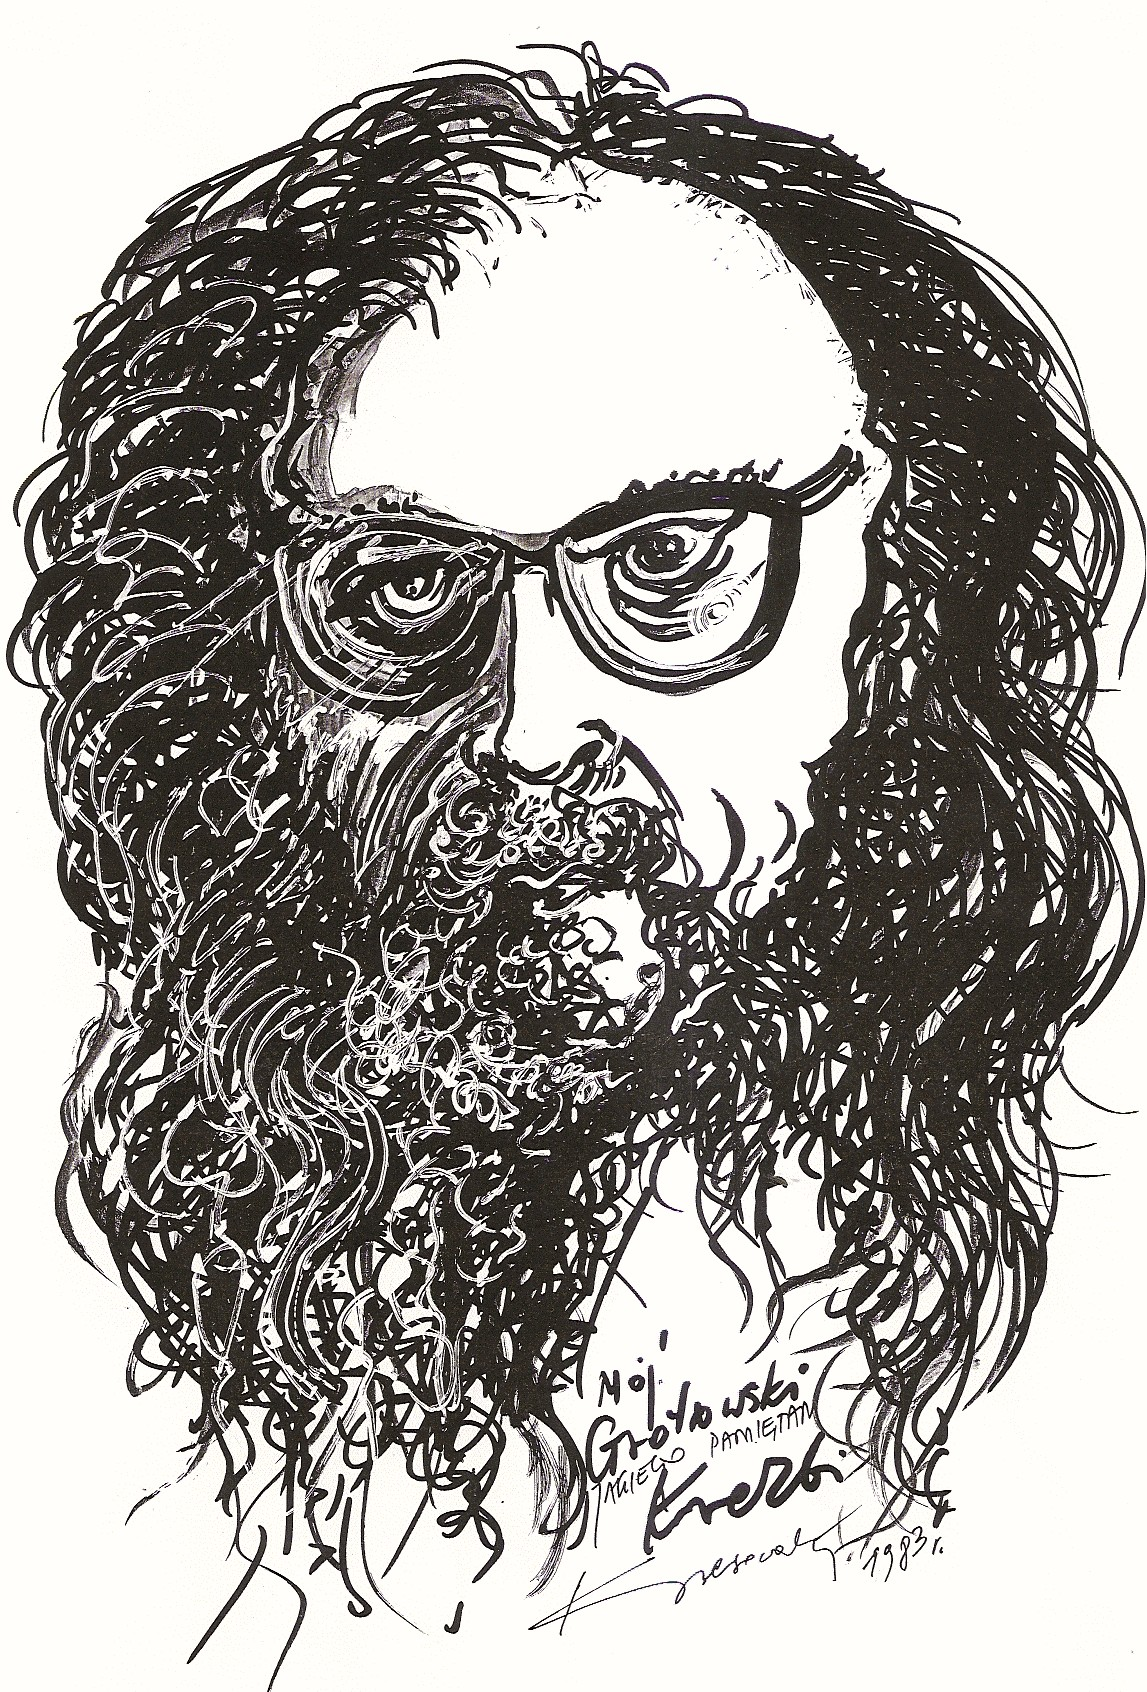 a biography of jerzy marian grotowski from poland Jerzy grotwski essays jerzy marian grotowski was brought into the world on august 11th 1931 in rzeszow, poland, to his father, a forest ranger, and his mother, who was a teacher.